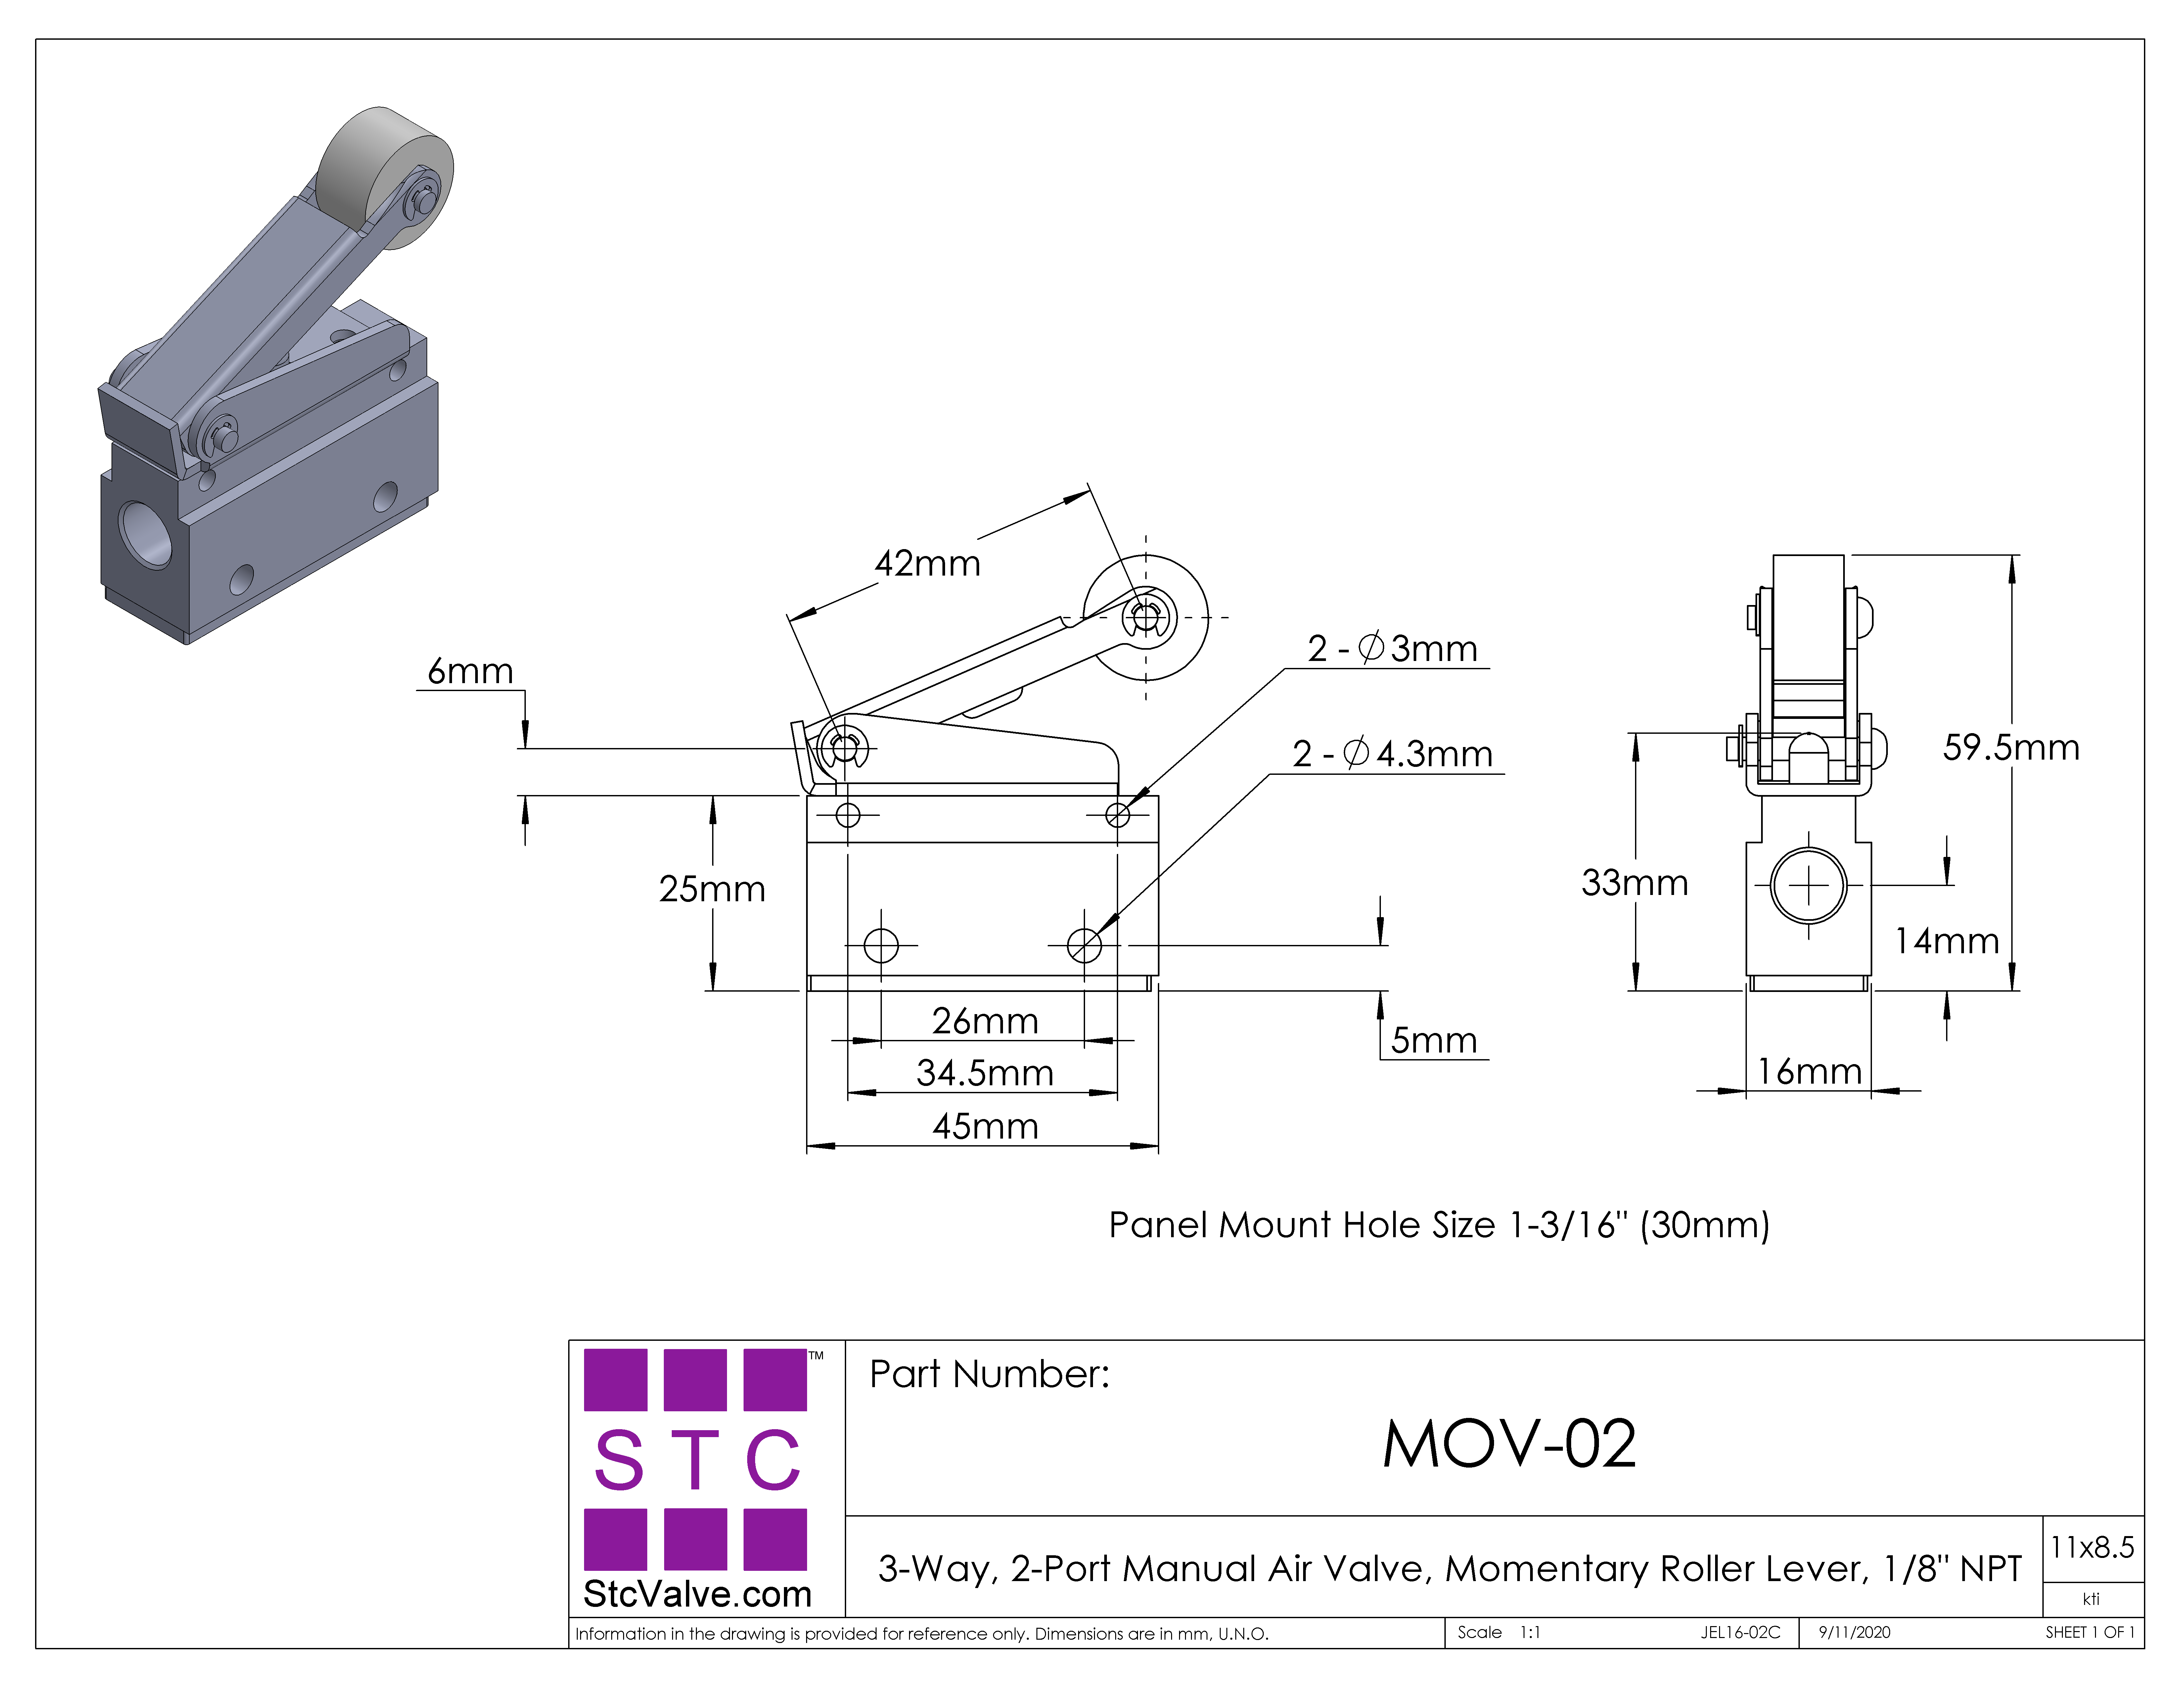 mov 02 hand operated pneumatic air valve with momentary roller leverlubrication, not required